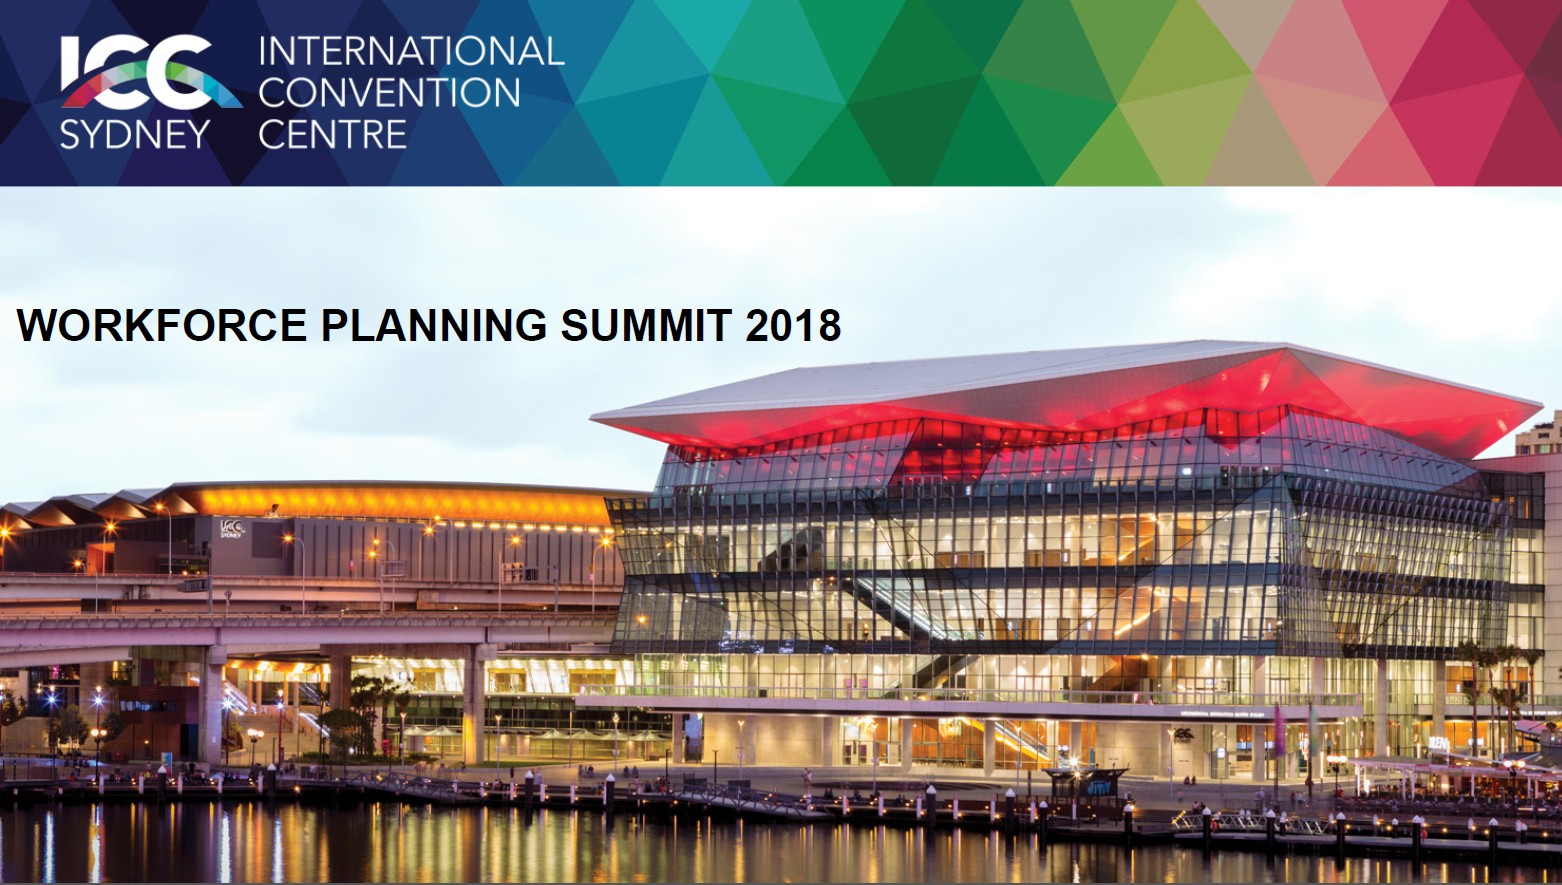 International Convention Centre: Understanding How HR Metrics and Workforce Analytics can be Effectively Used to Create Business Opportunities and Growth